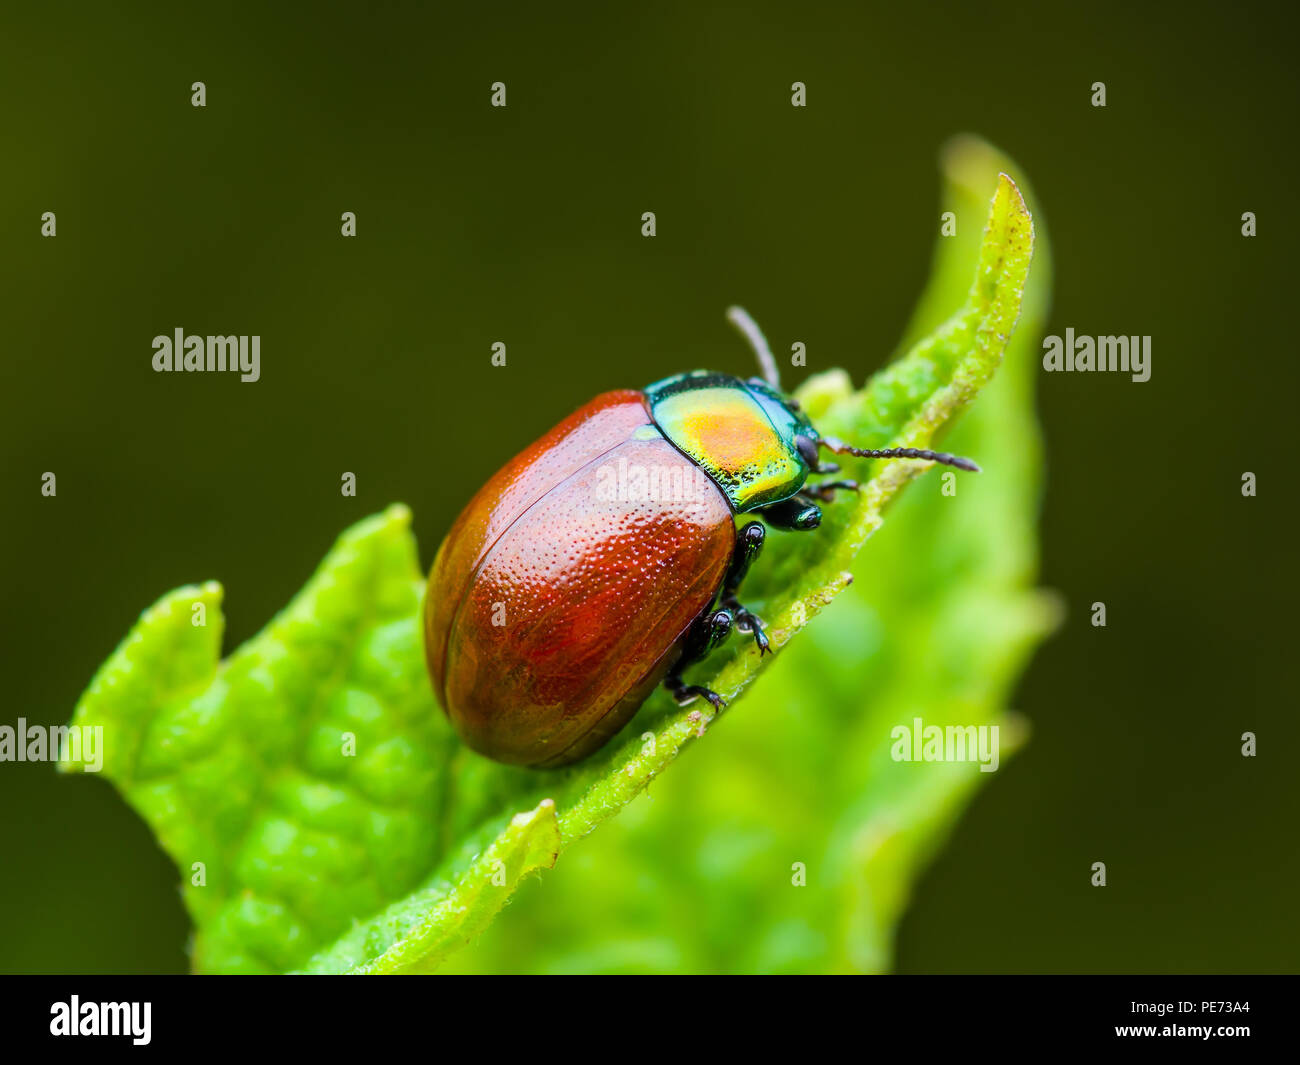 Chrysolina Coerulans Red Mint Leaf Beetle Insect Crawling on Green Leaf Macro - Stock Image